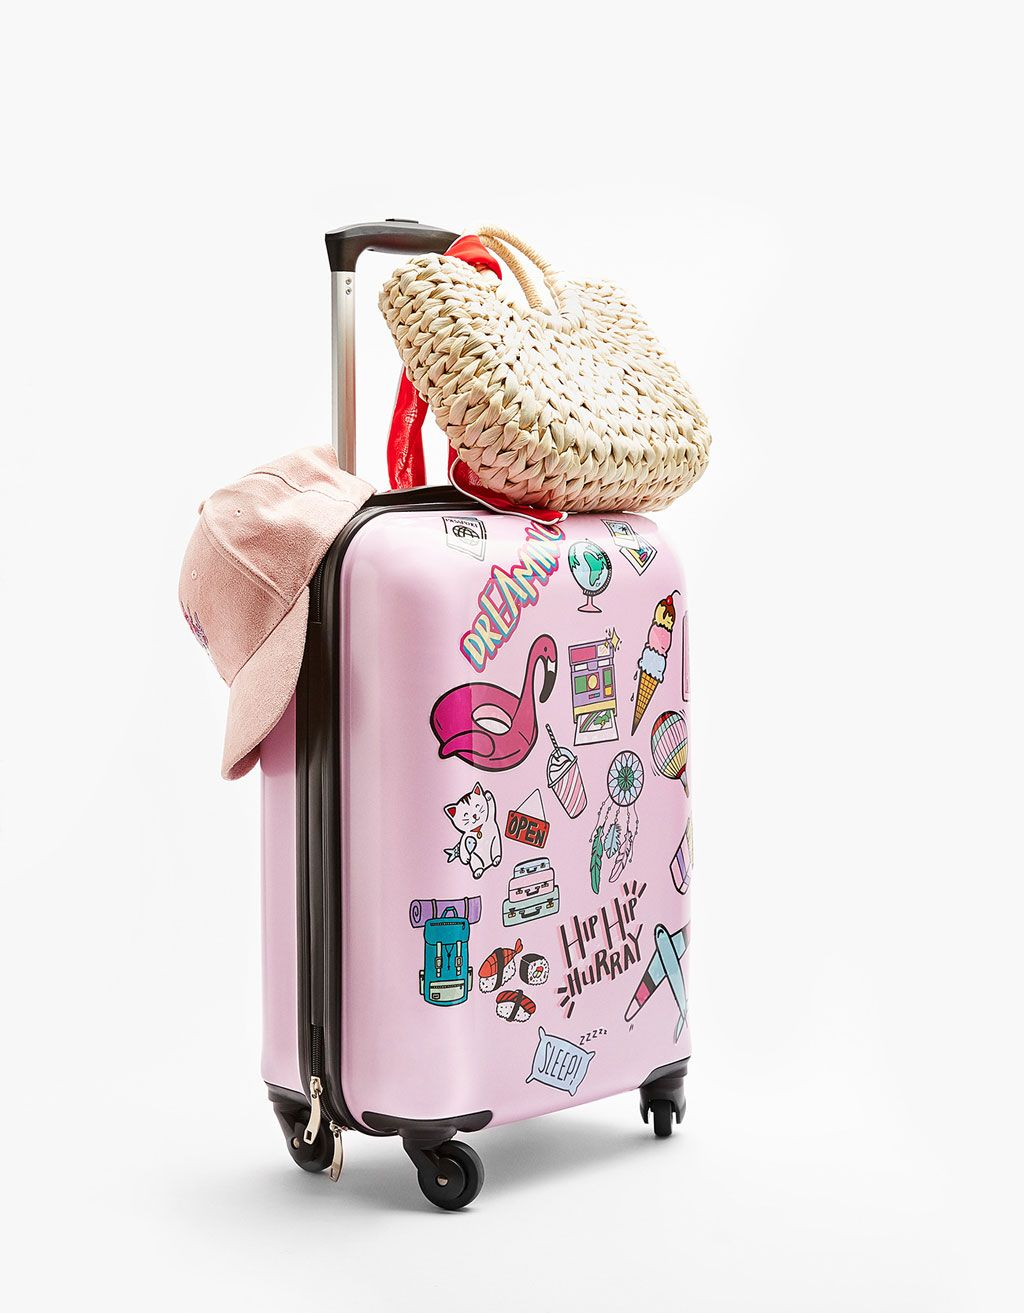 b356687fd27 Bershka United States - Customizable suitcase with stickers   Bright ...